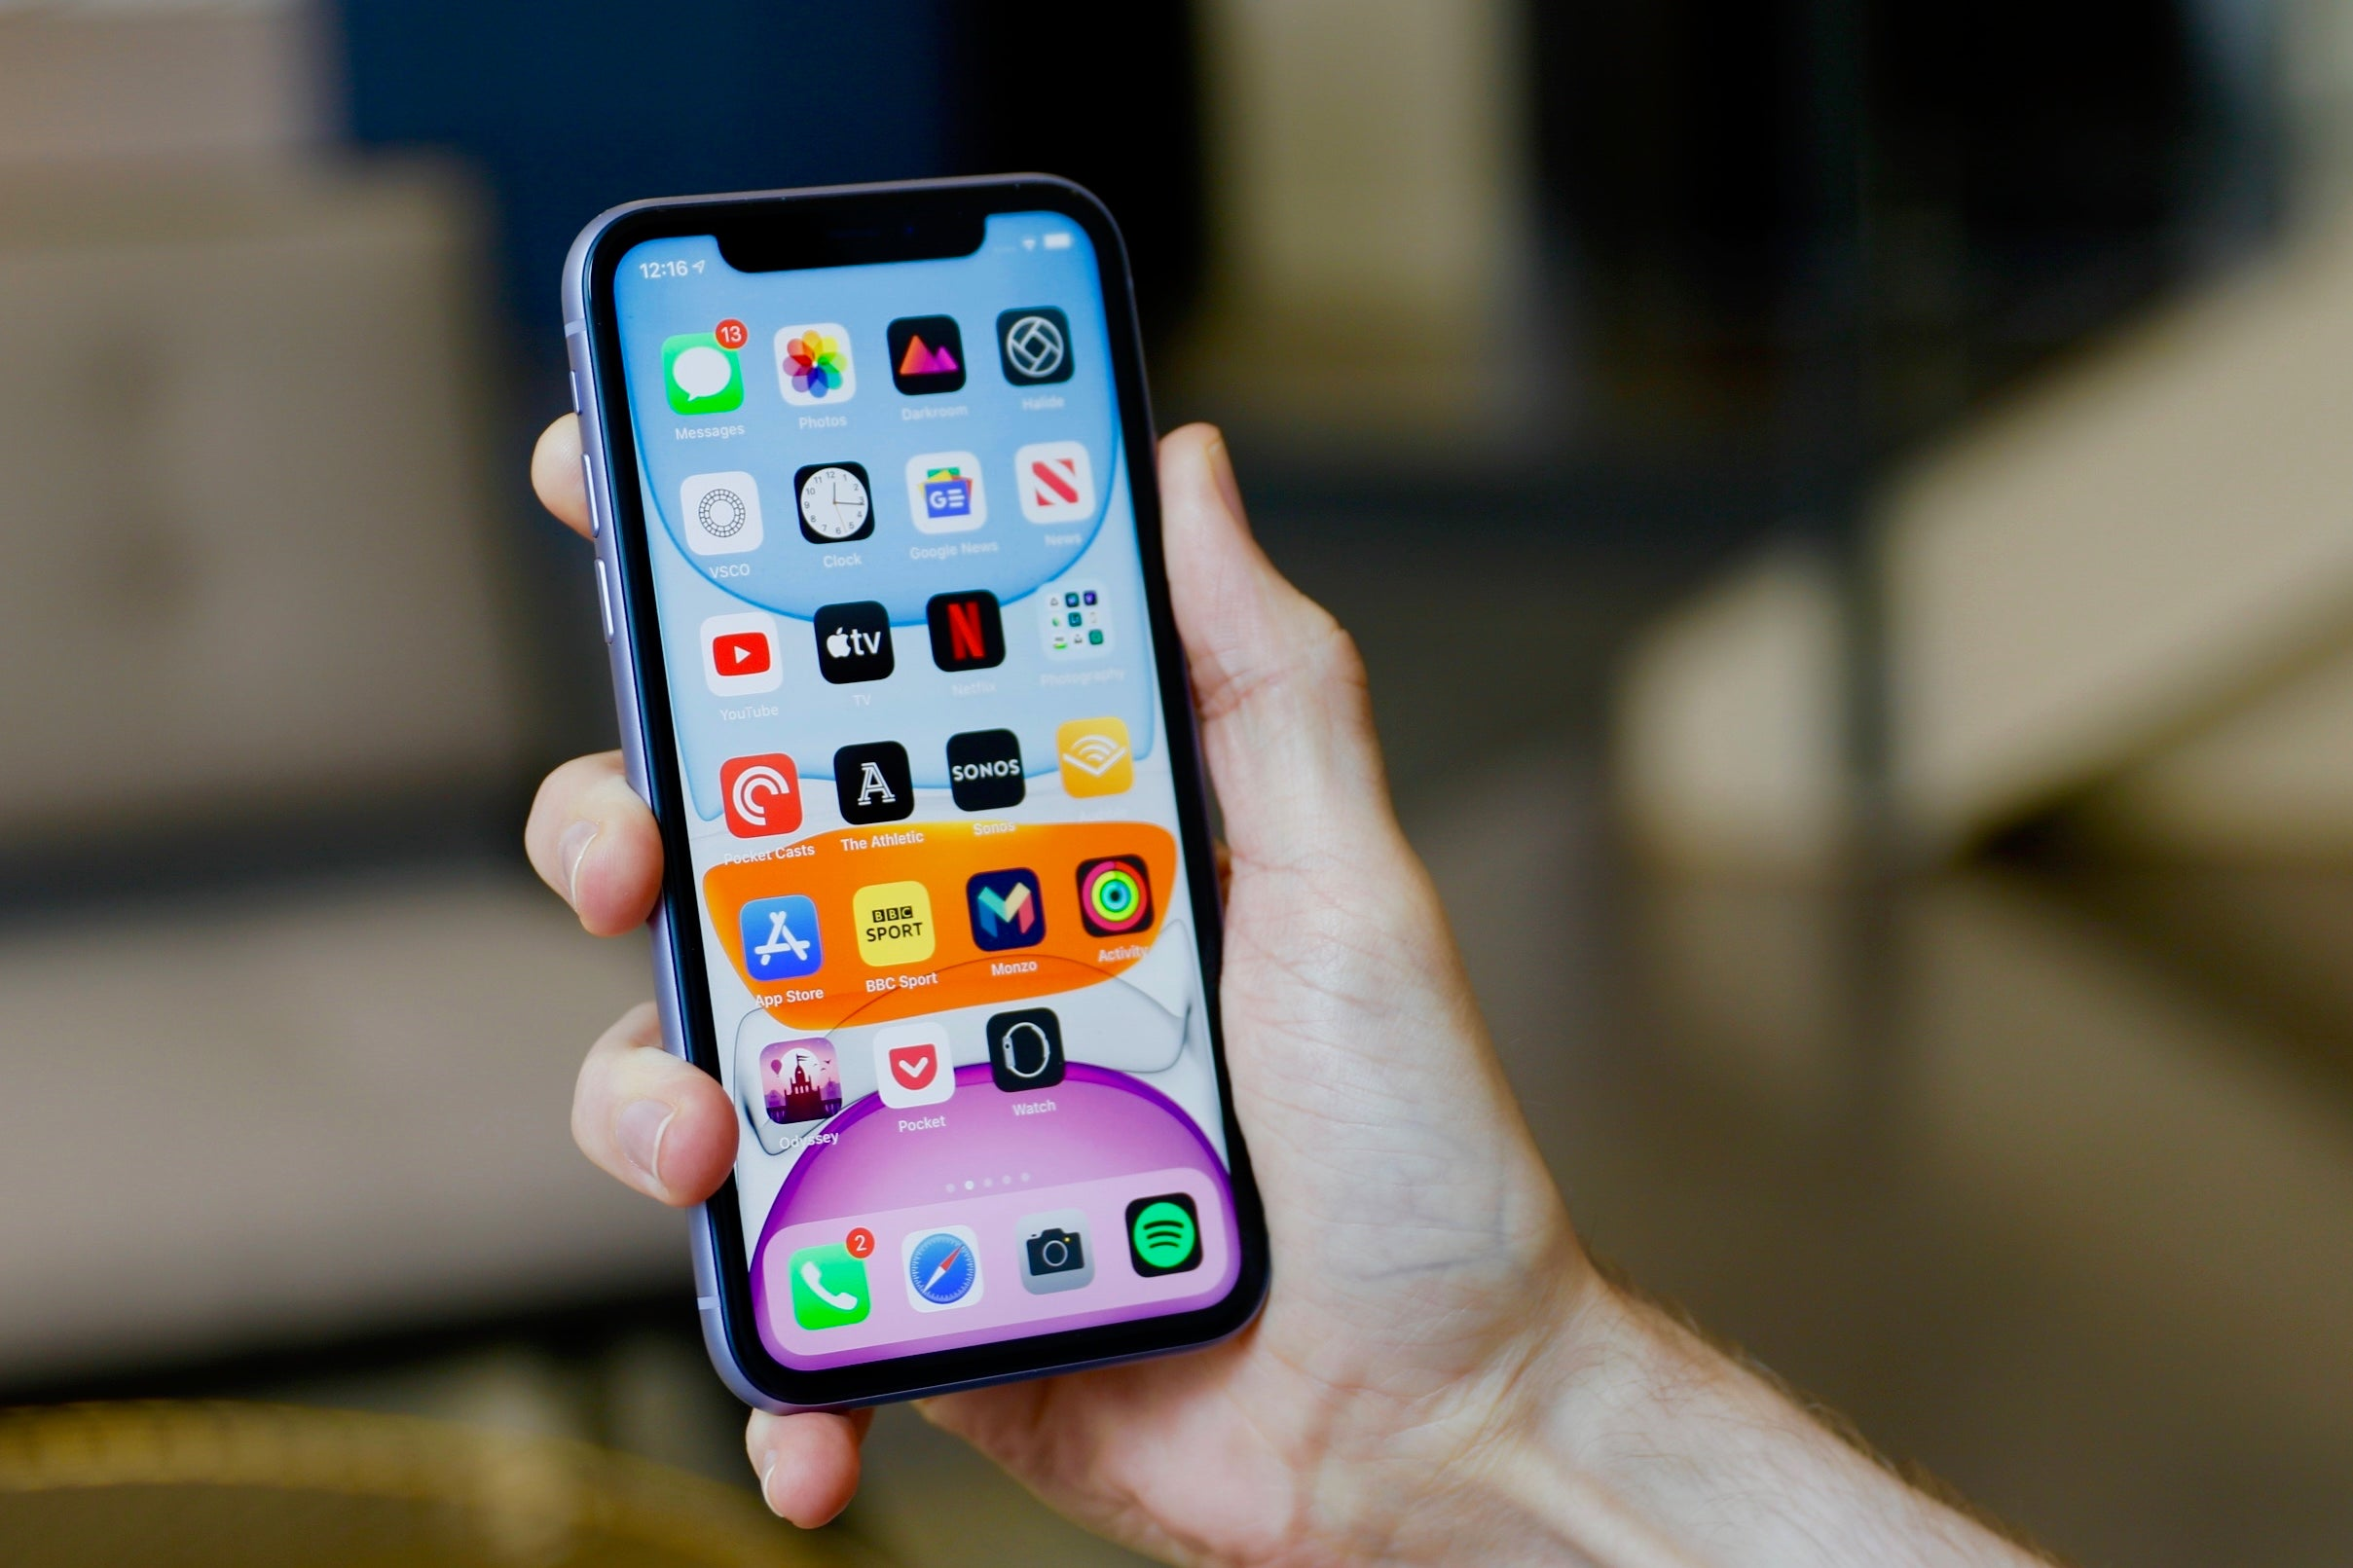 Apple iPhone 11 Review: still an excellent iPhone that's